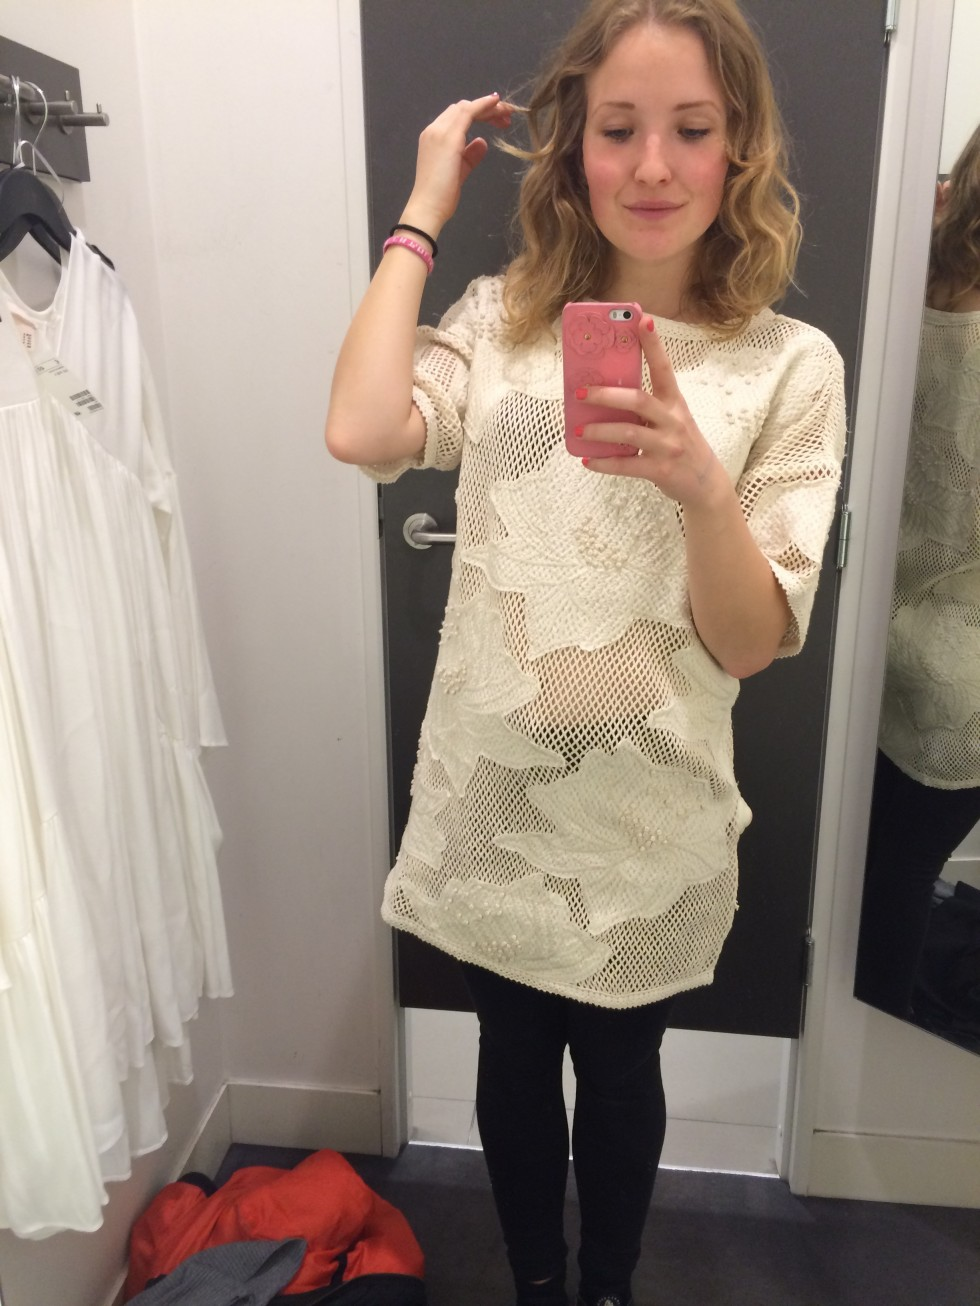 e9ce7cb76c64 Dressing room selfies - SILVER STORIES